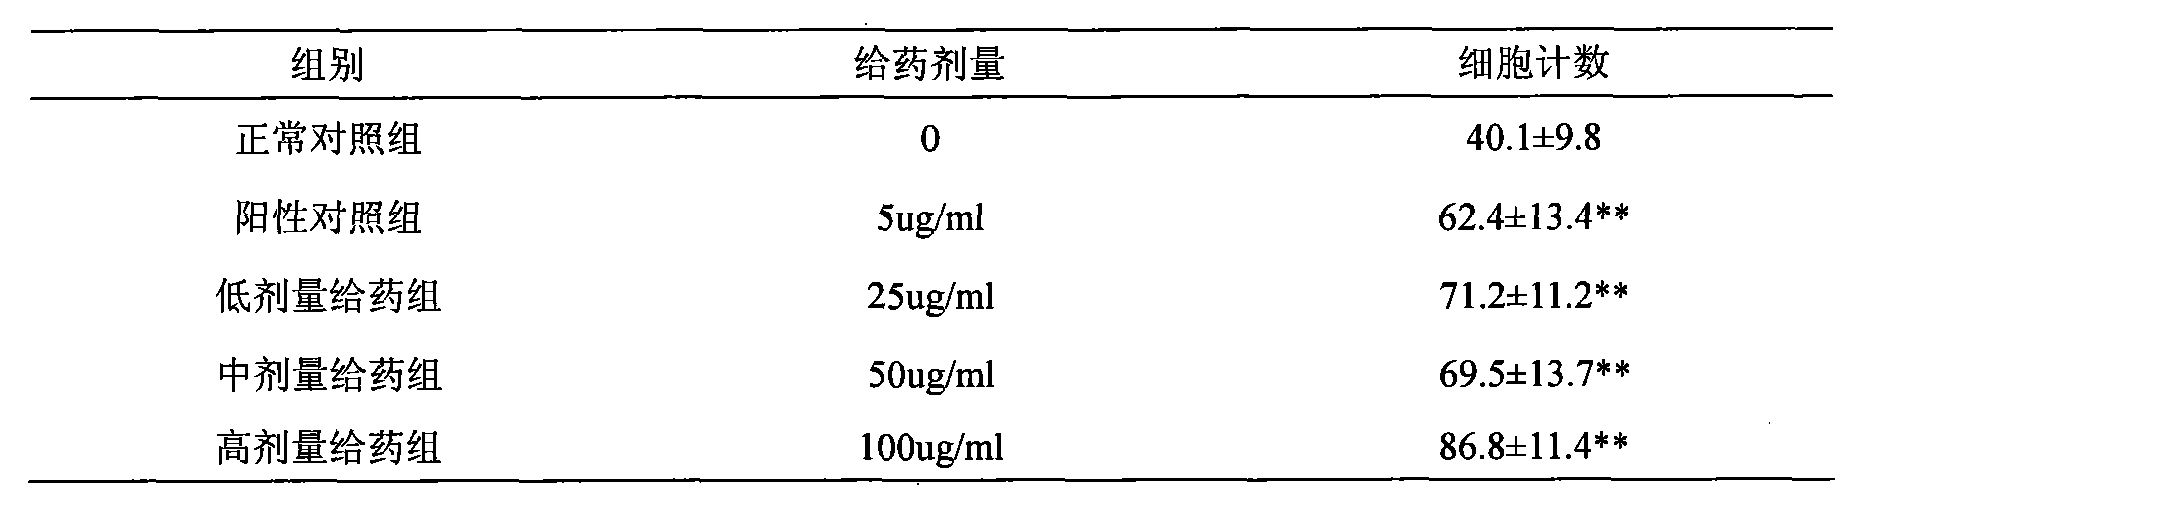 CN101810812B - Galangal effective part in the preparation of a